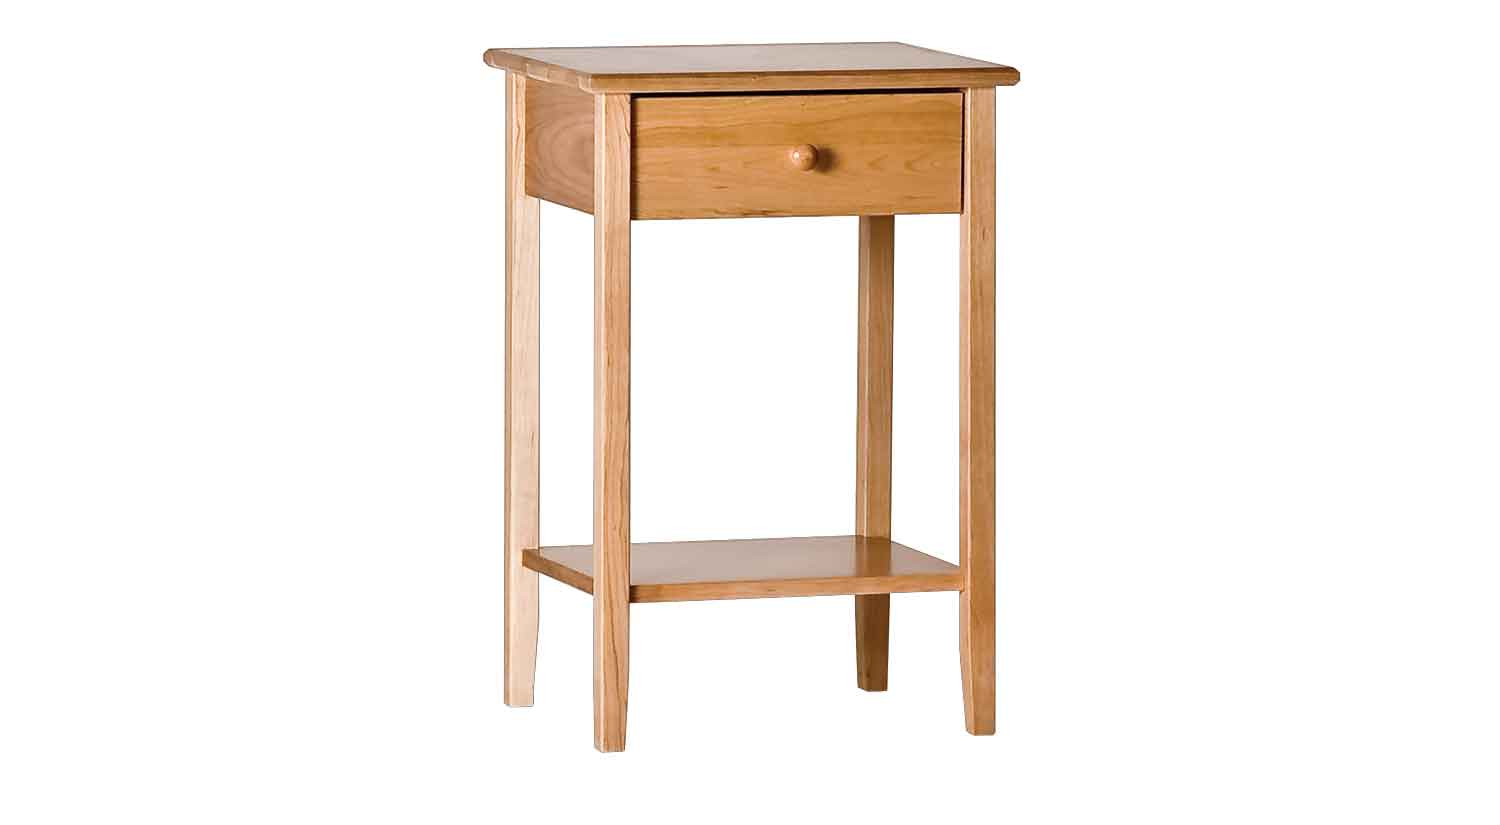 circle furniture shaker tall side table accent tables white blue bedroom lamps clamp legs kids room living with stools marble copper coffee target patio dining made nest barn